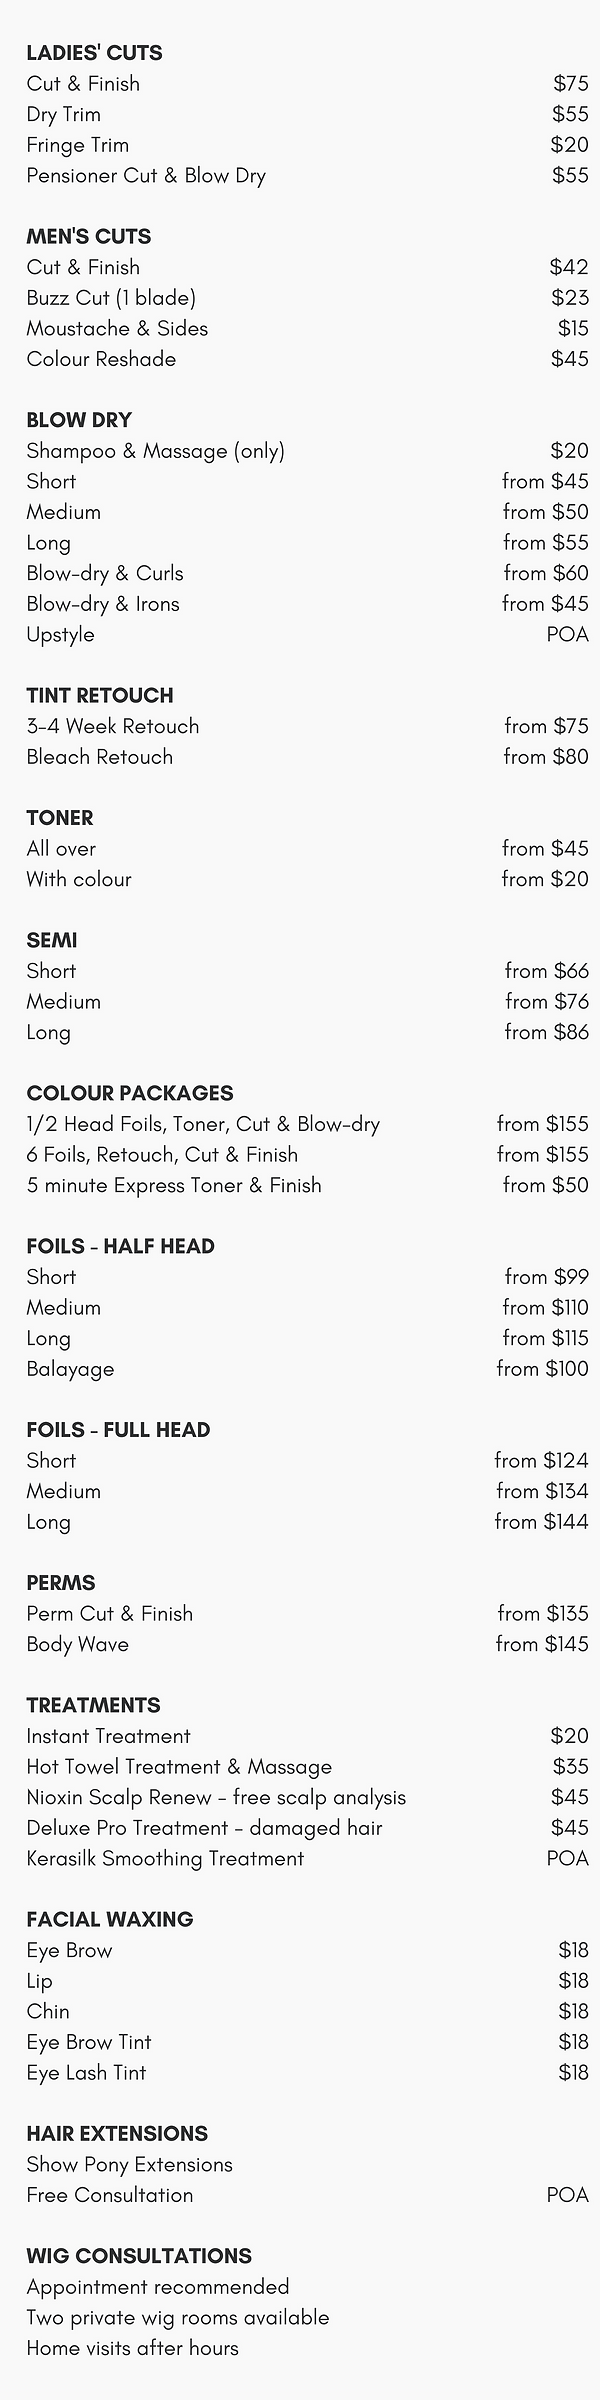 Hairific Price List.png